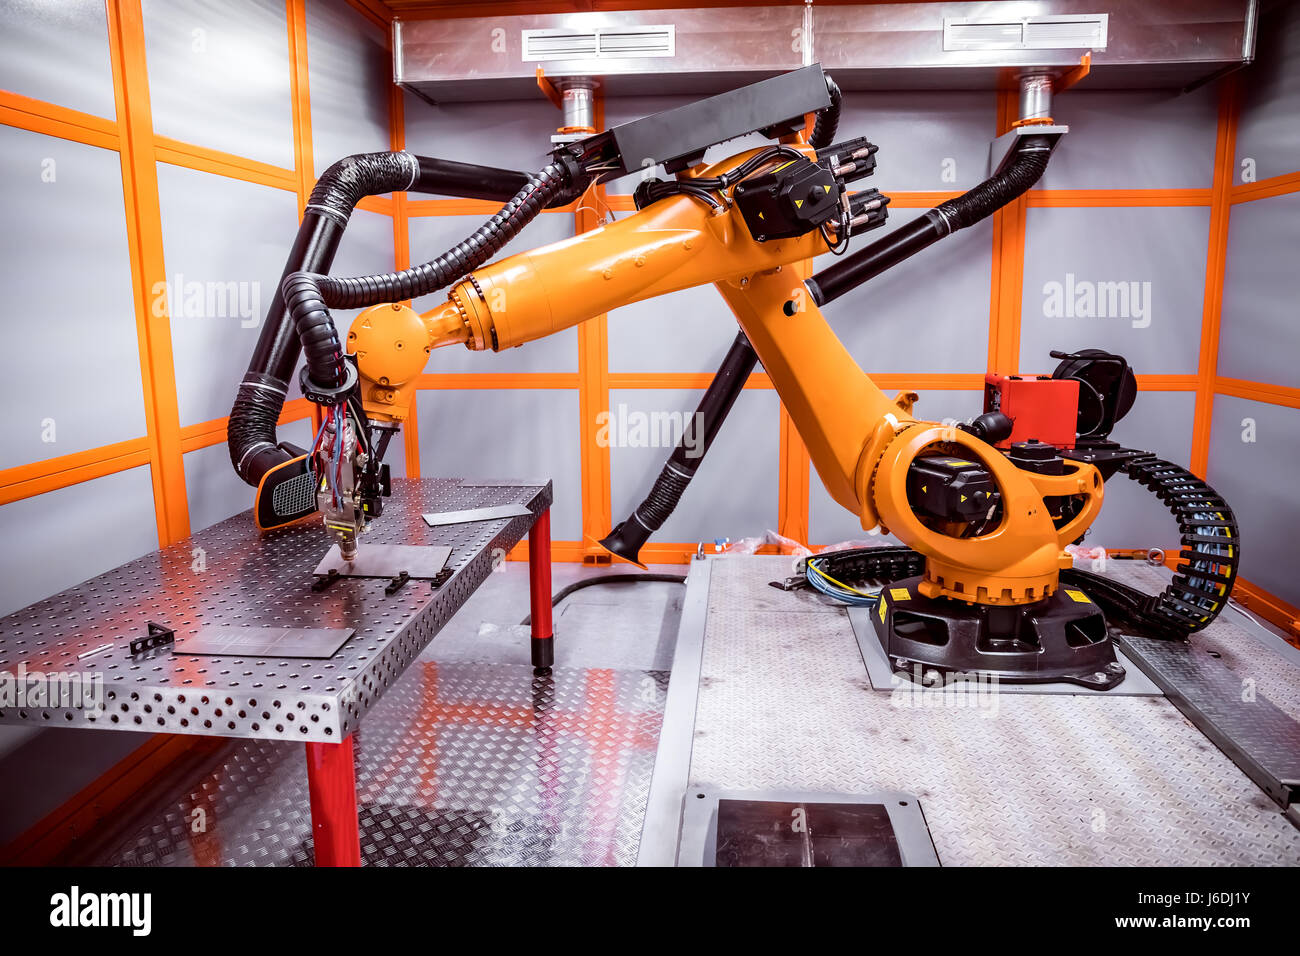 Fibre laser robotic remote cutting system. CNC Laser plasma cutting of metal, modern industrial technology. - Stock Image